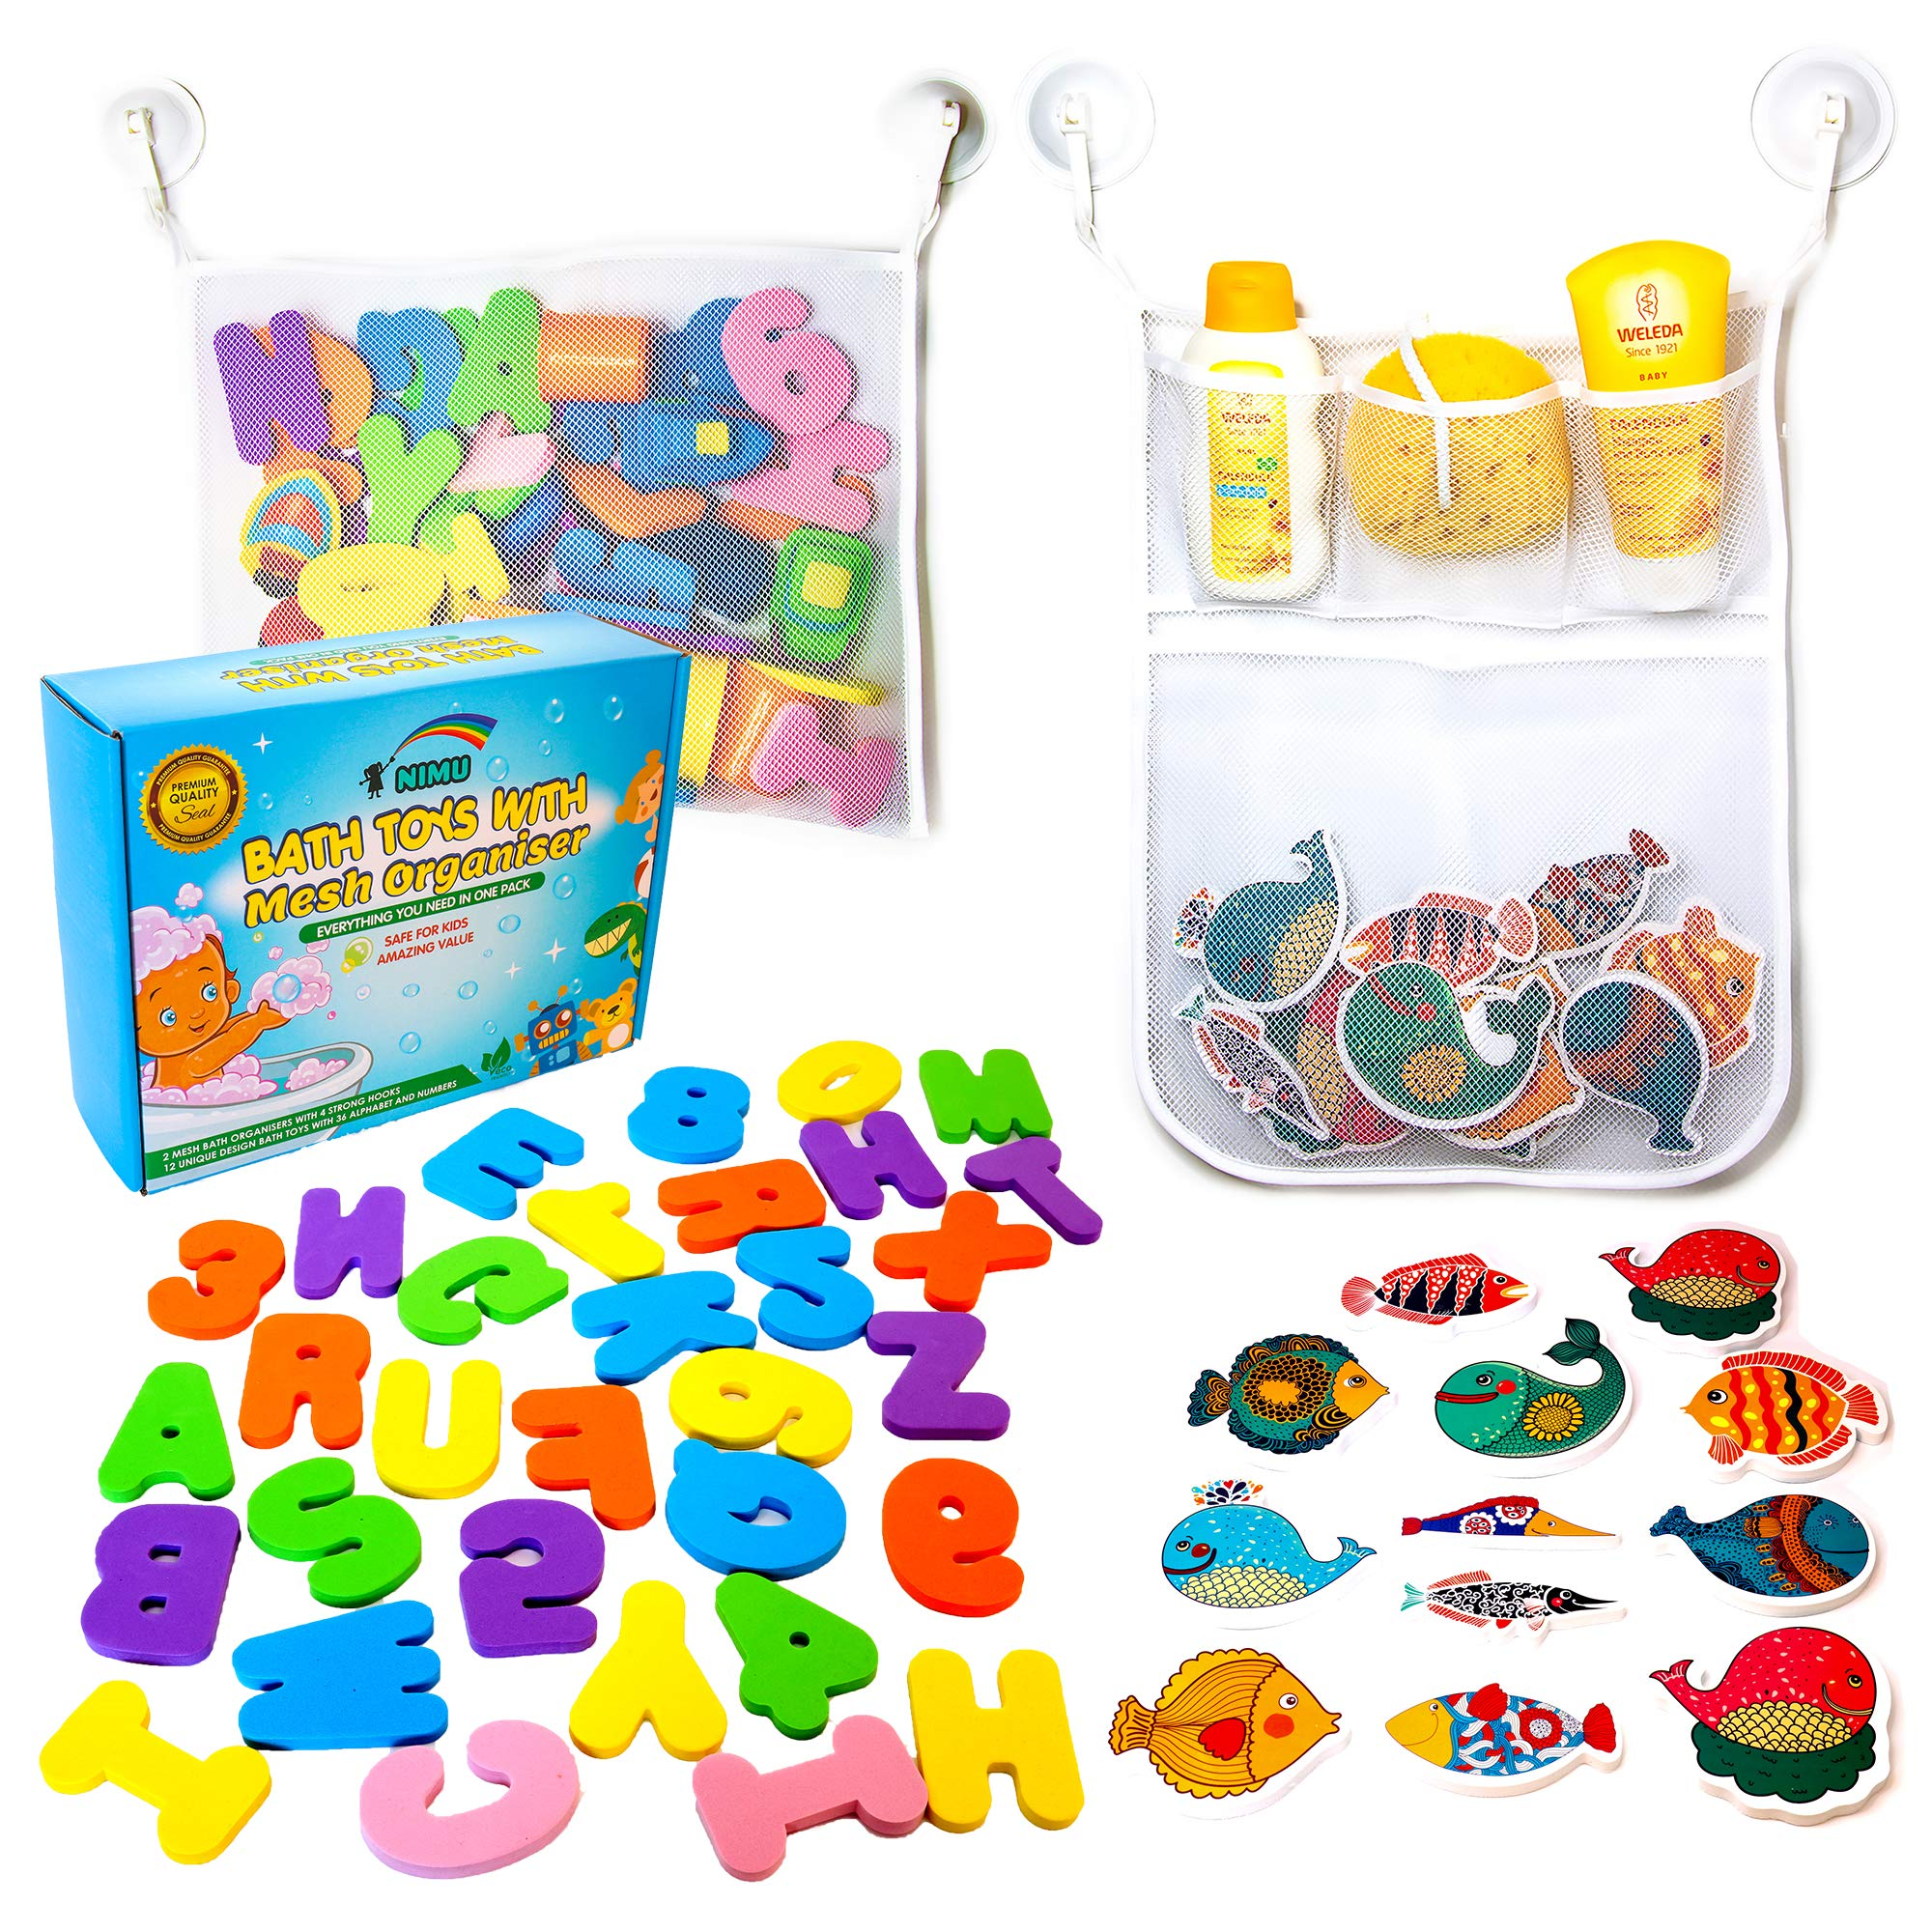 36 Bath Toys Letters and Numbers Toddlers Large Toy Organiser Net Bag for Baby Boys /& Girls and Shower Caddy Bonuses 2 x Mesh Bath Toy Storage 6 Ultra Strong Suction Hooks